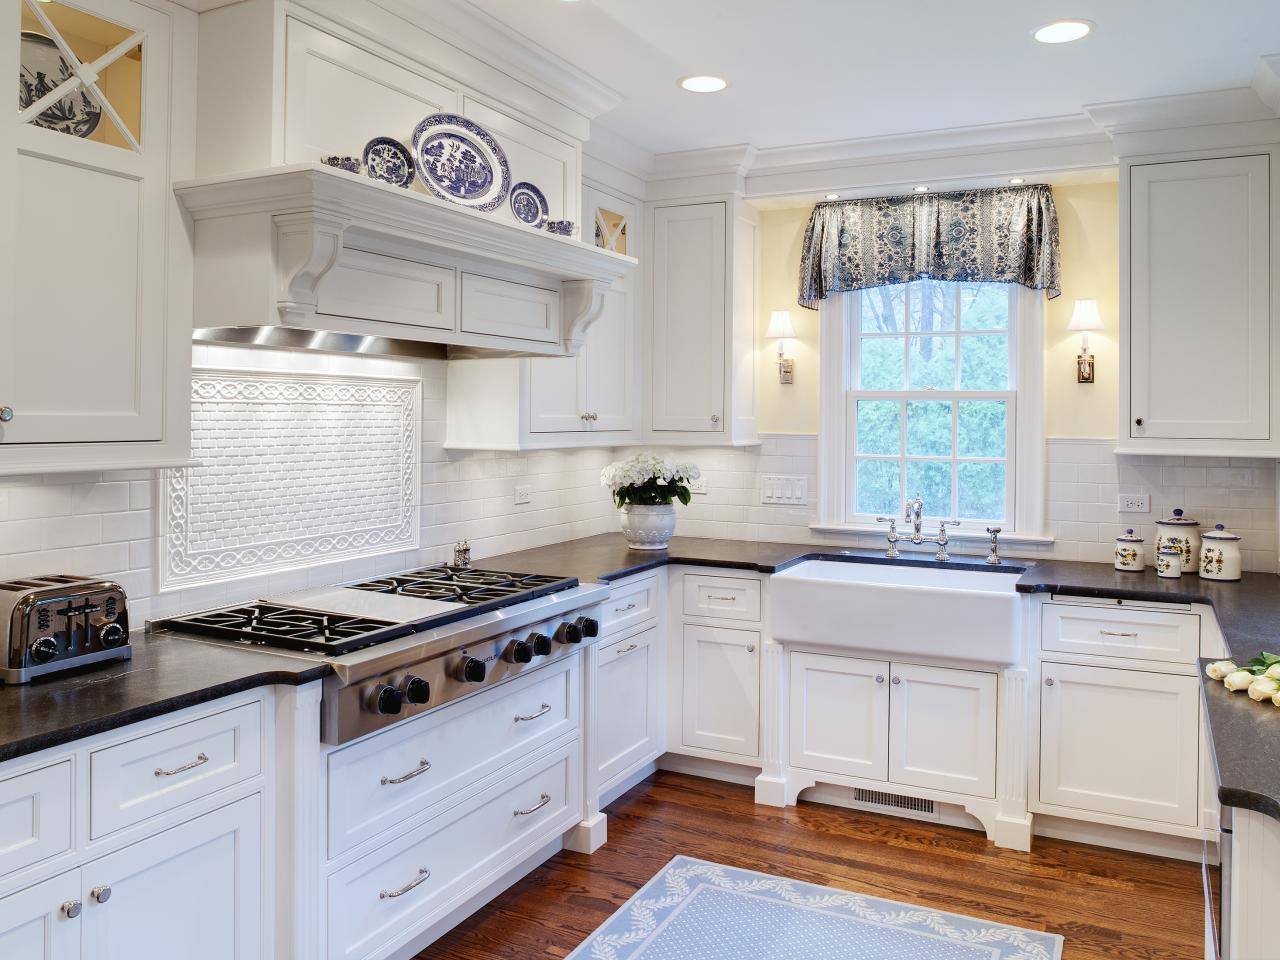 Top 15 Stunning Kitchen Design Ideas Plus Their Costs Remodel And Tips Diy Remodeling